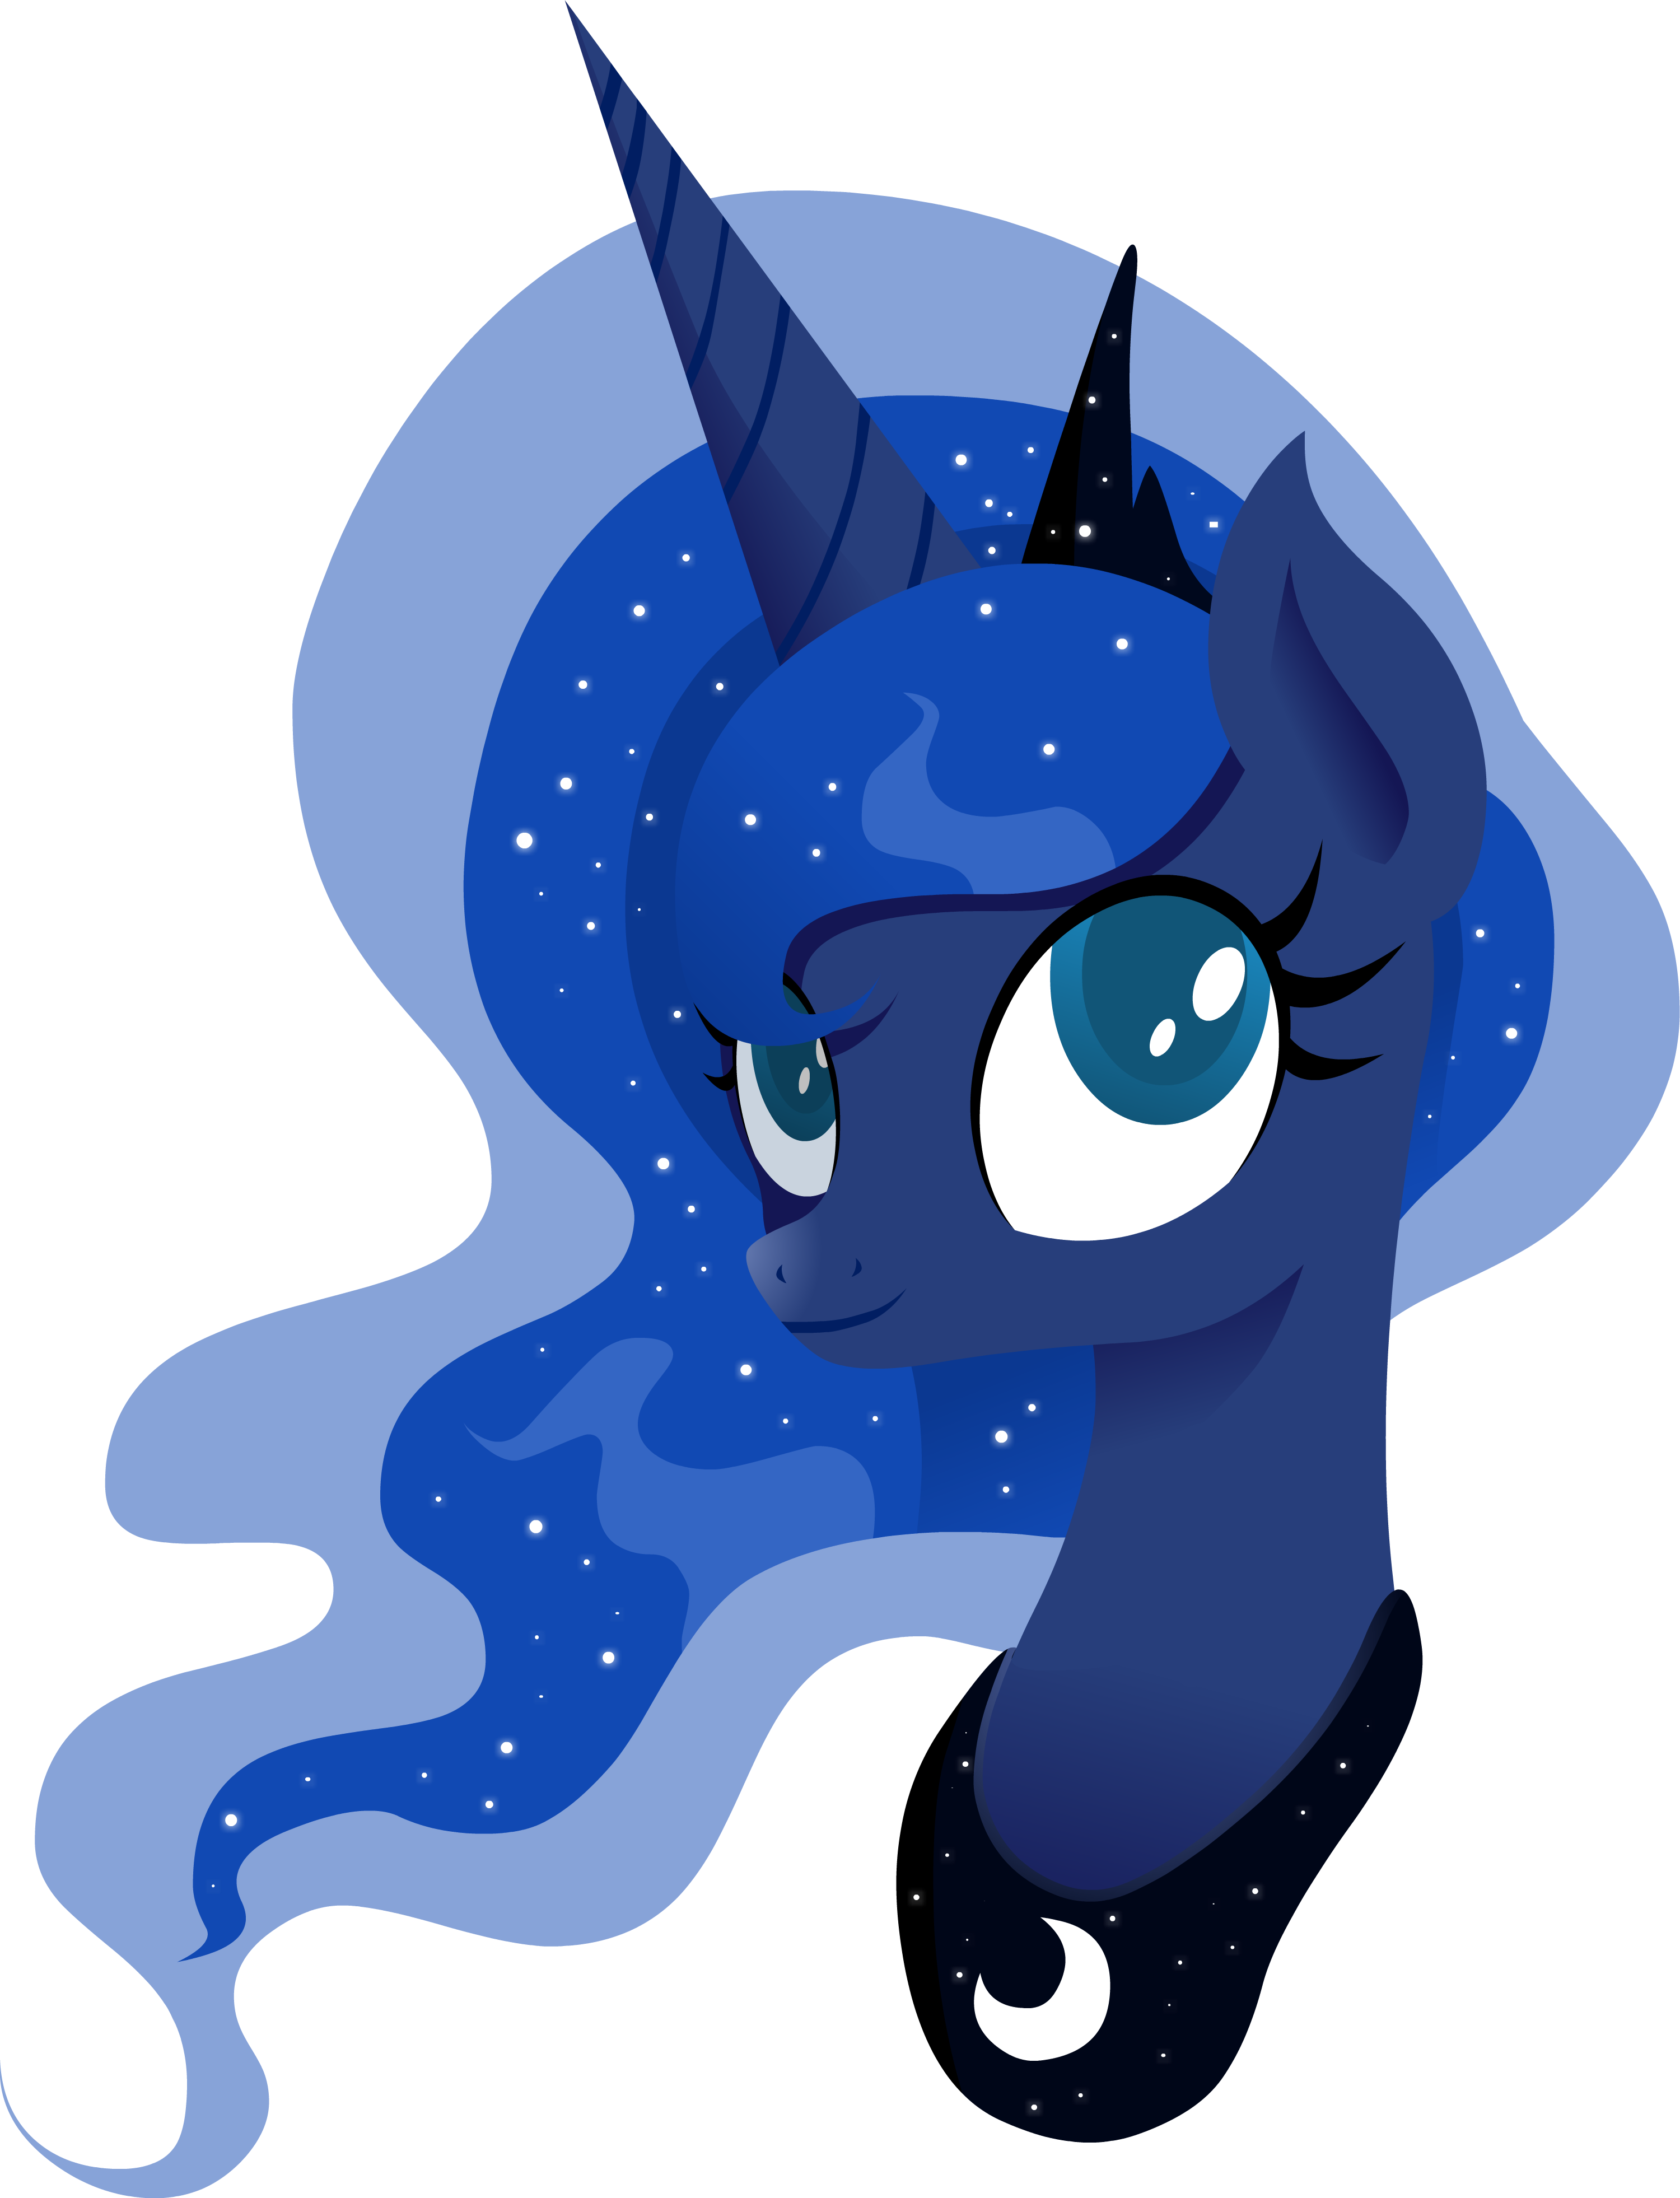 Luna by MikeTheUser